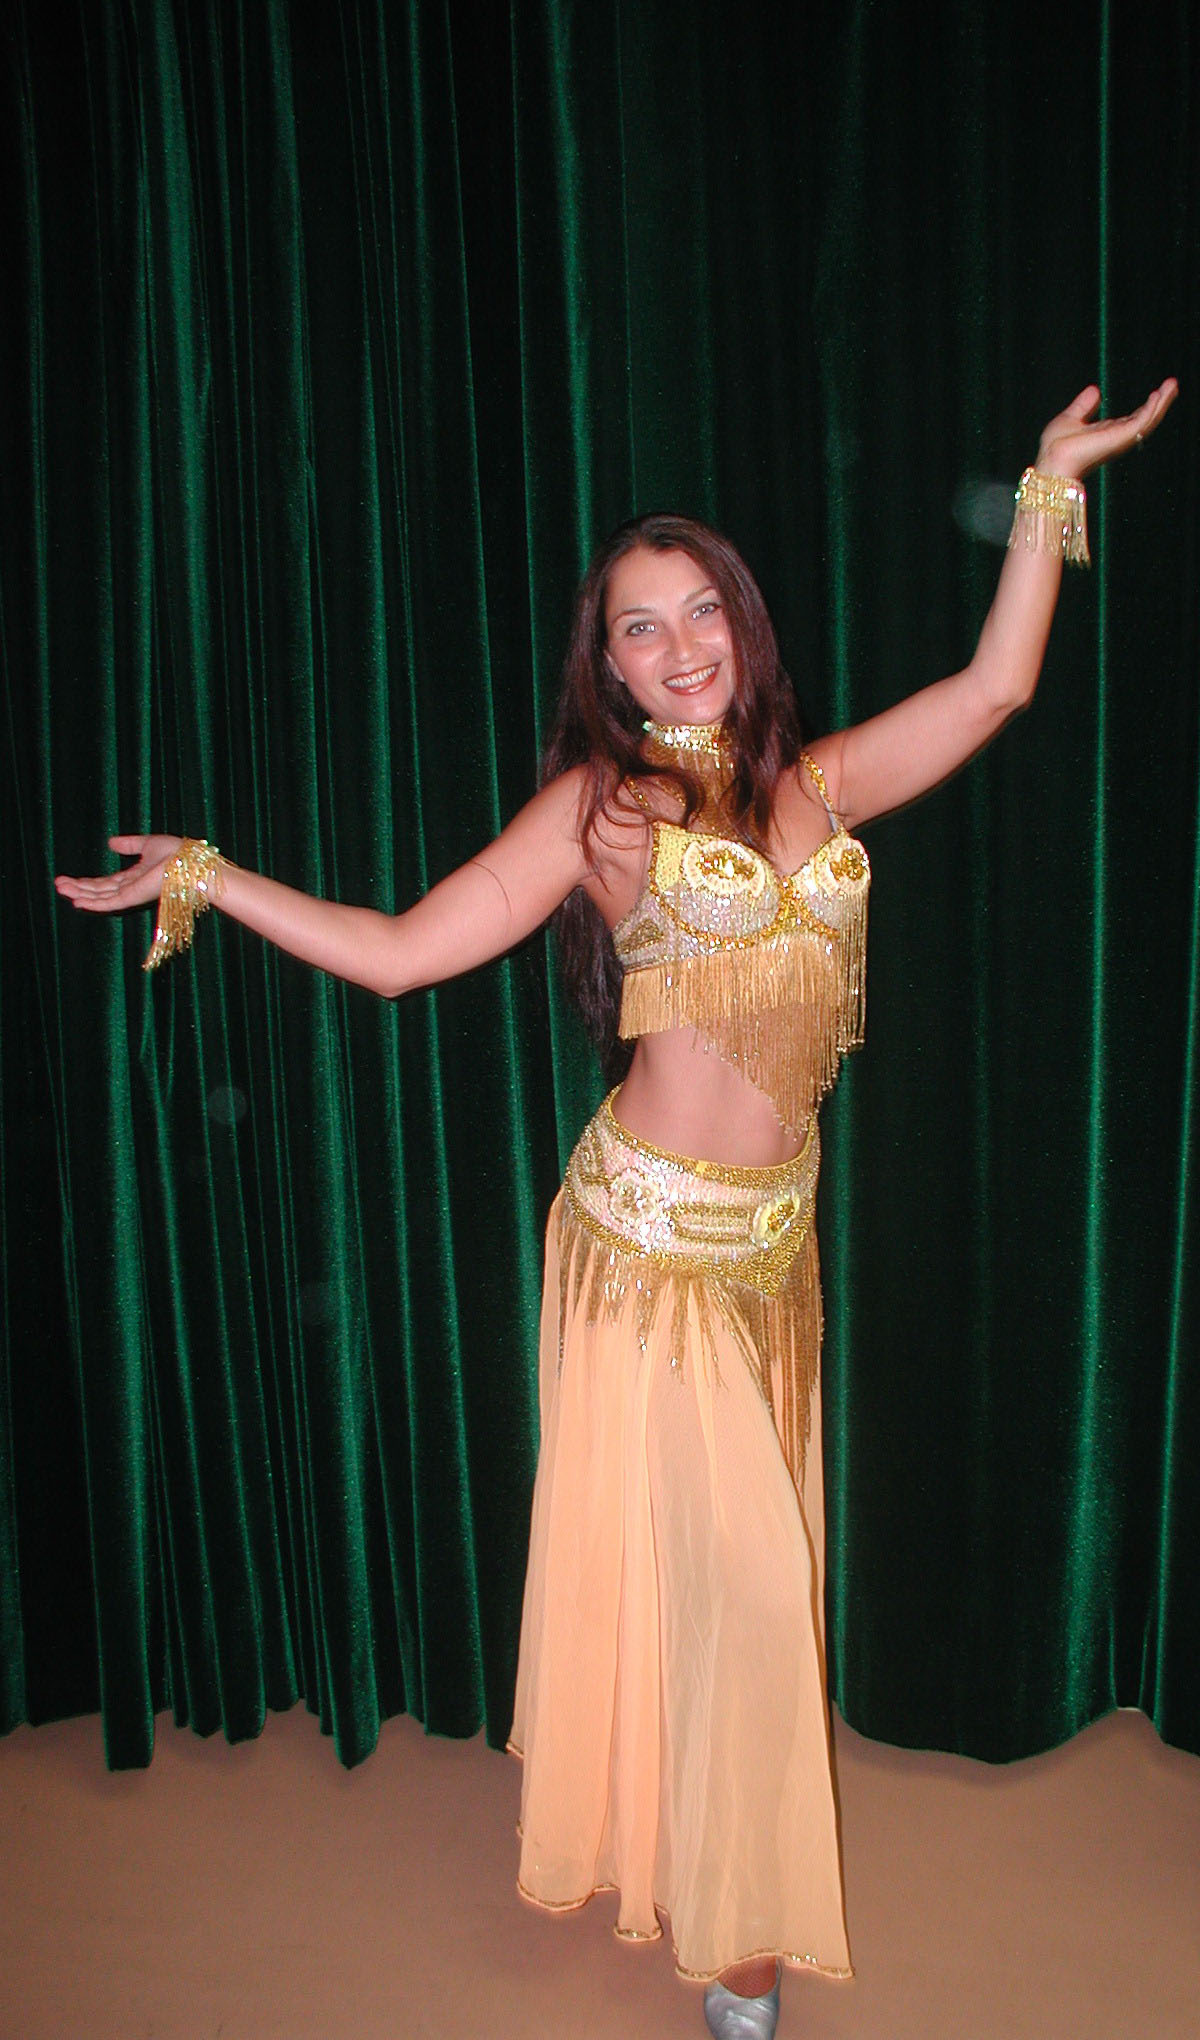 Belly Dancer Olga from Brooklyn, New York